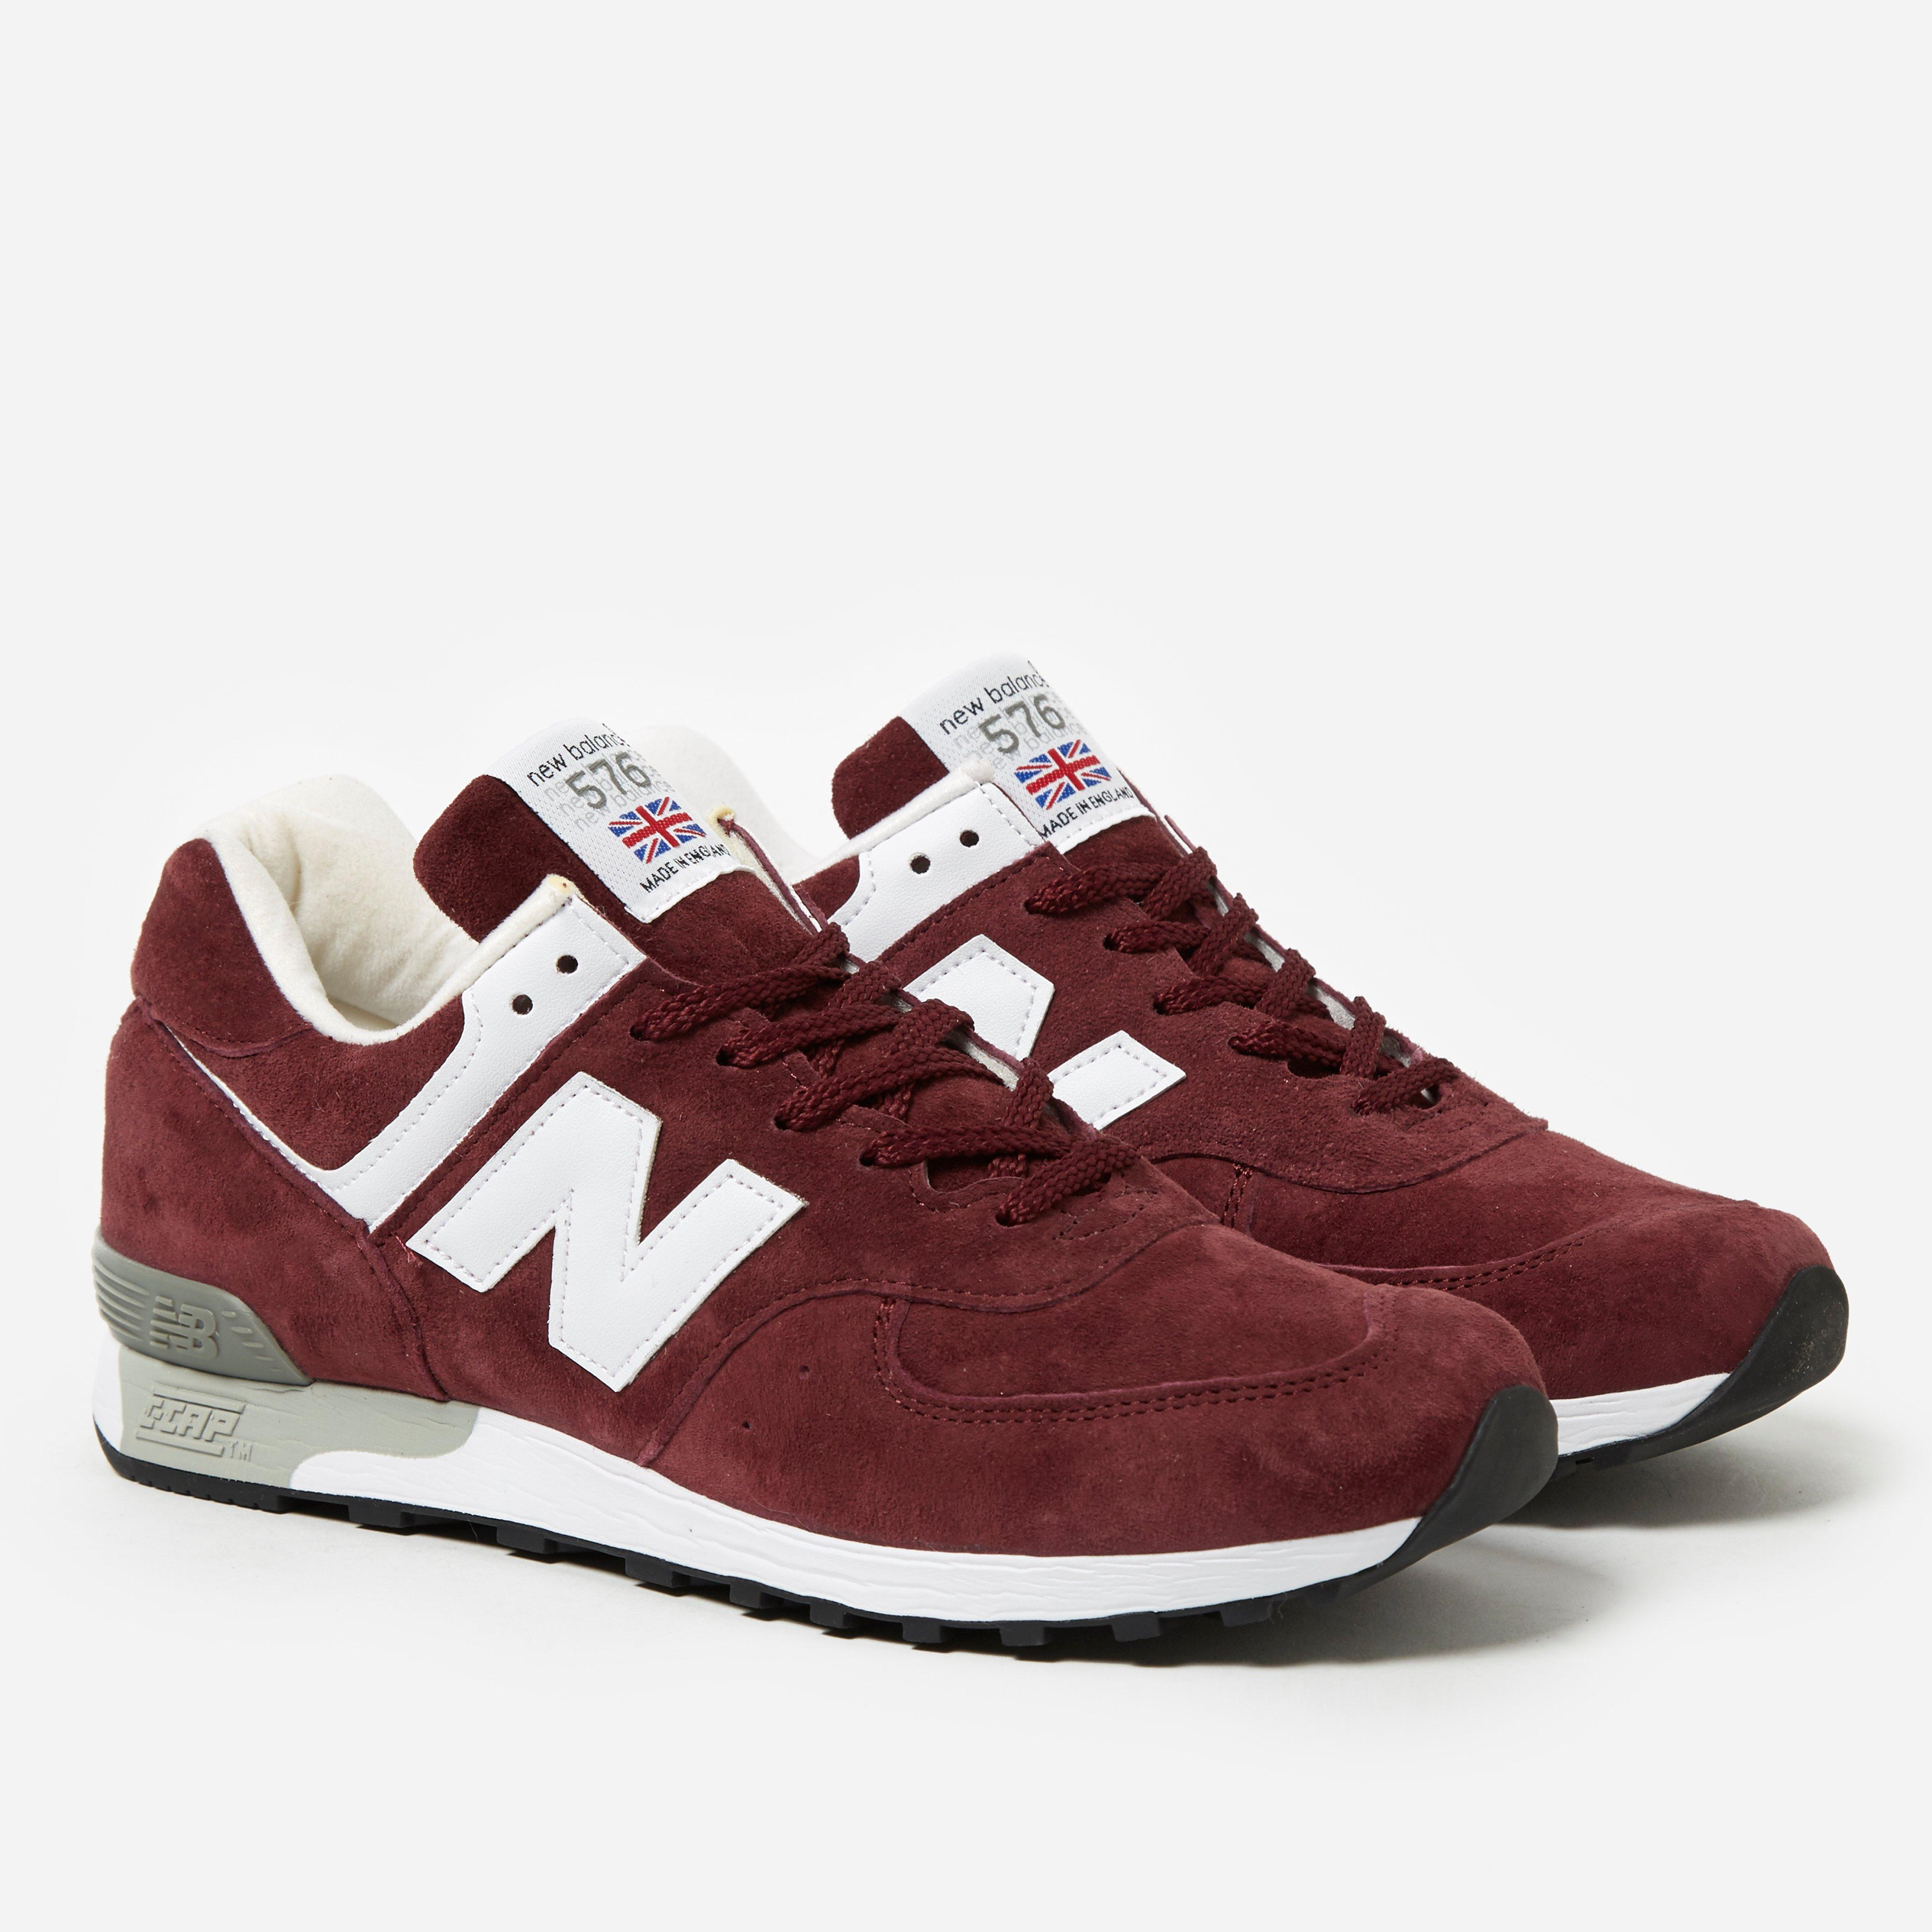 New Balance M576PRW Made In England